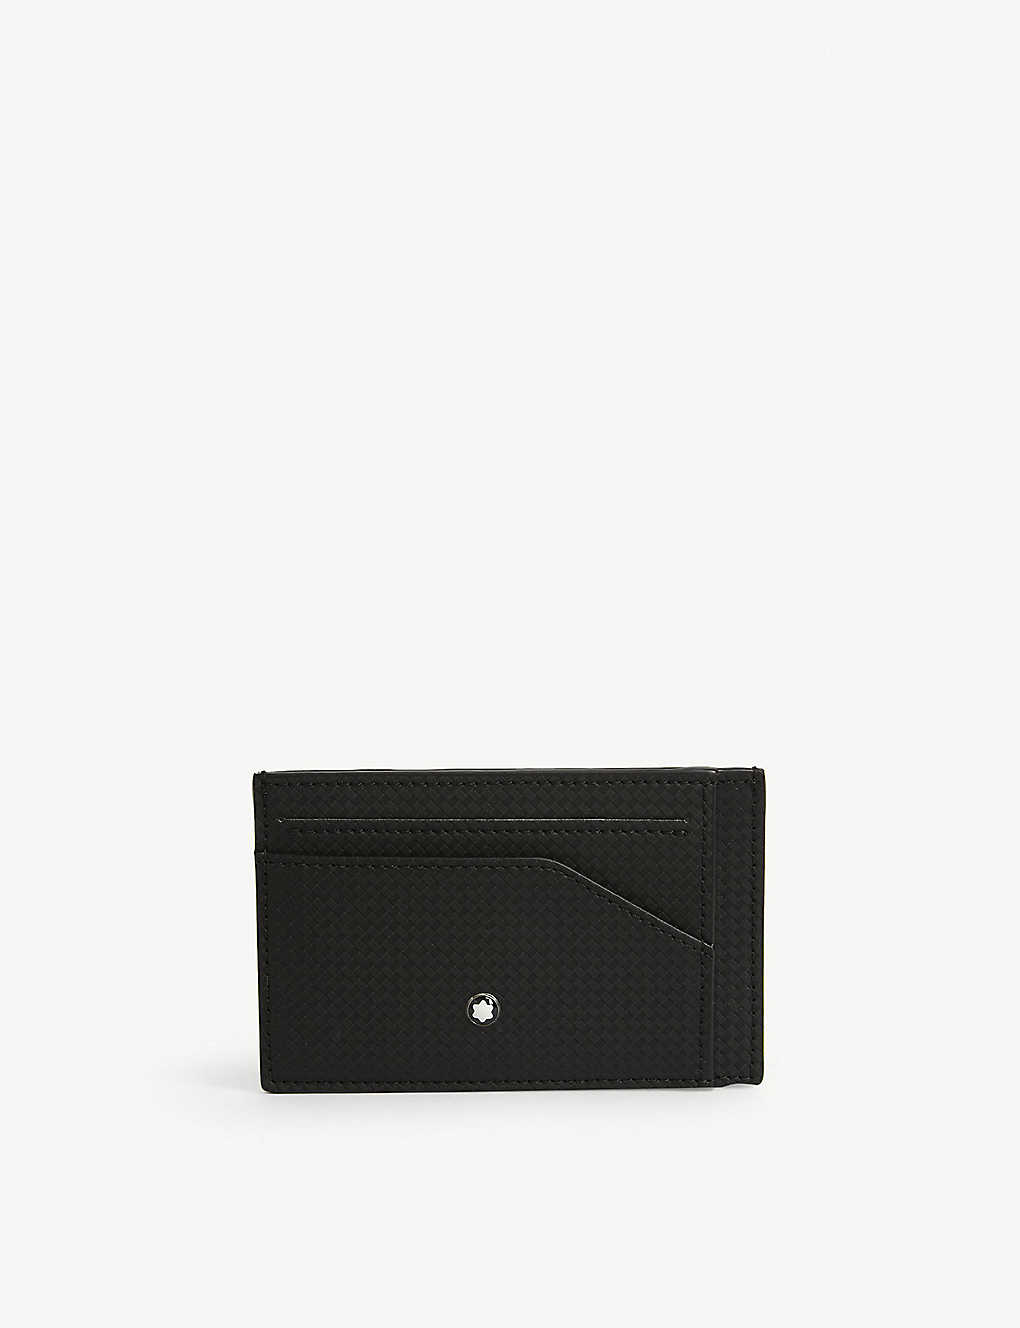 MONTBLANC: Extreme 2.0 leather card holder